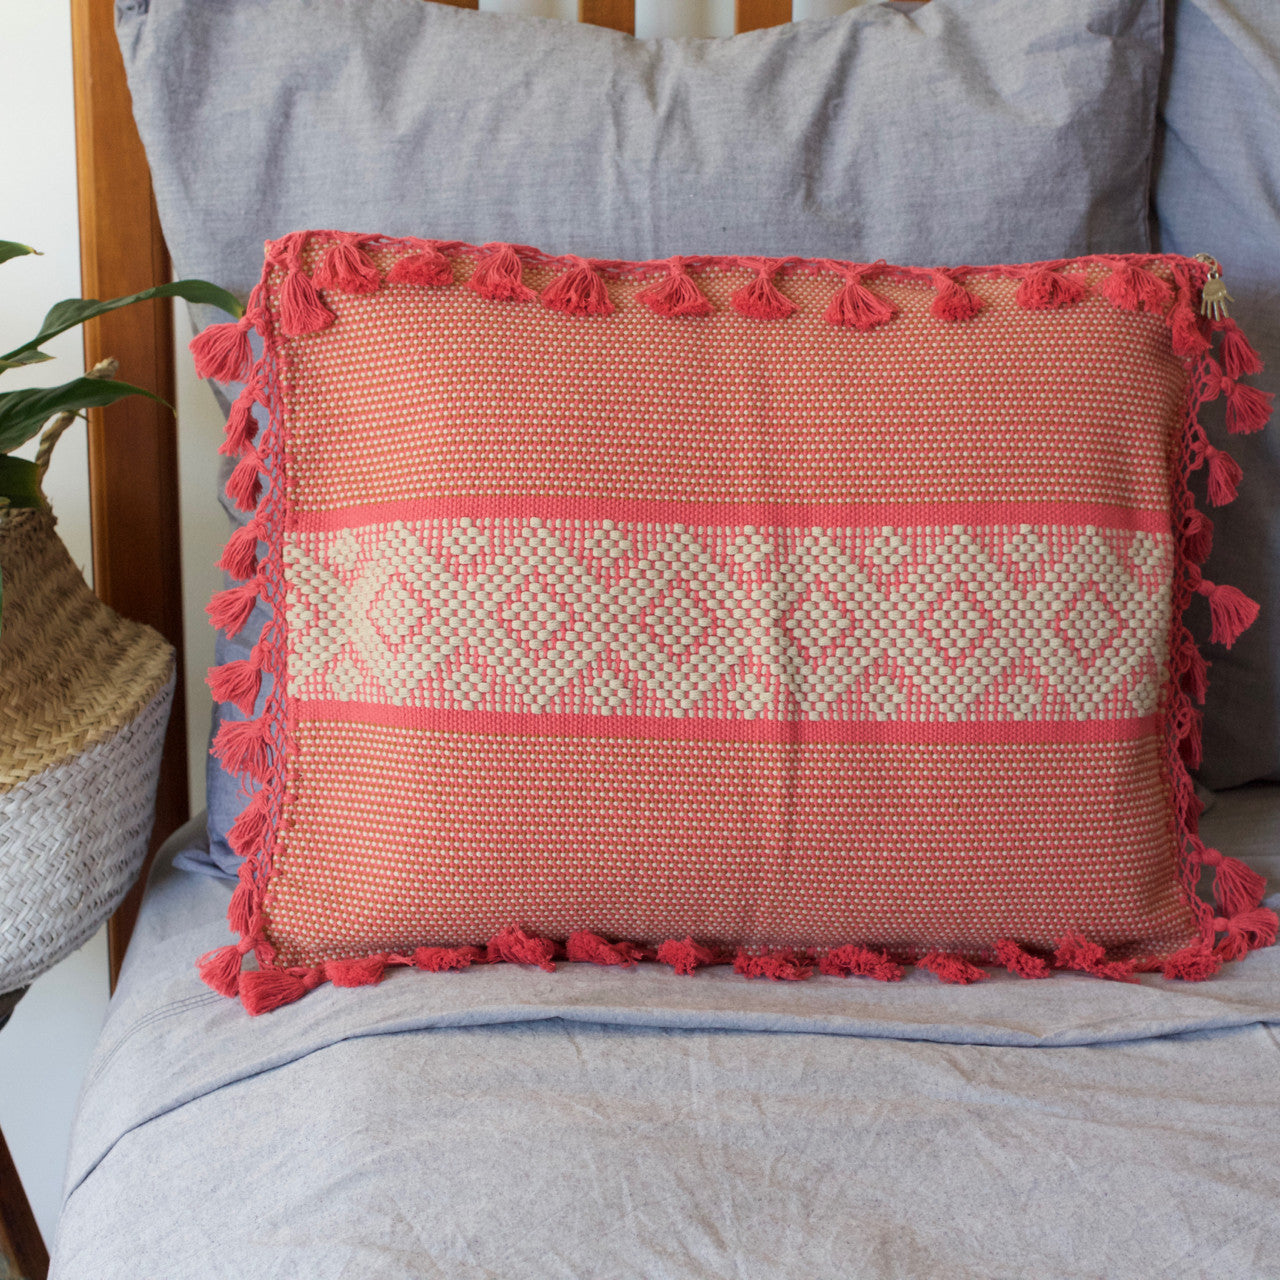 Jalieza Cushion - Large  Cushion Dusty Pink - Cielo Collective handmade Mexico Guatemala